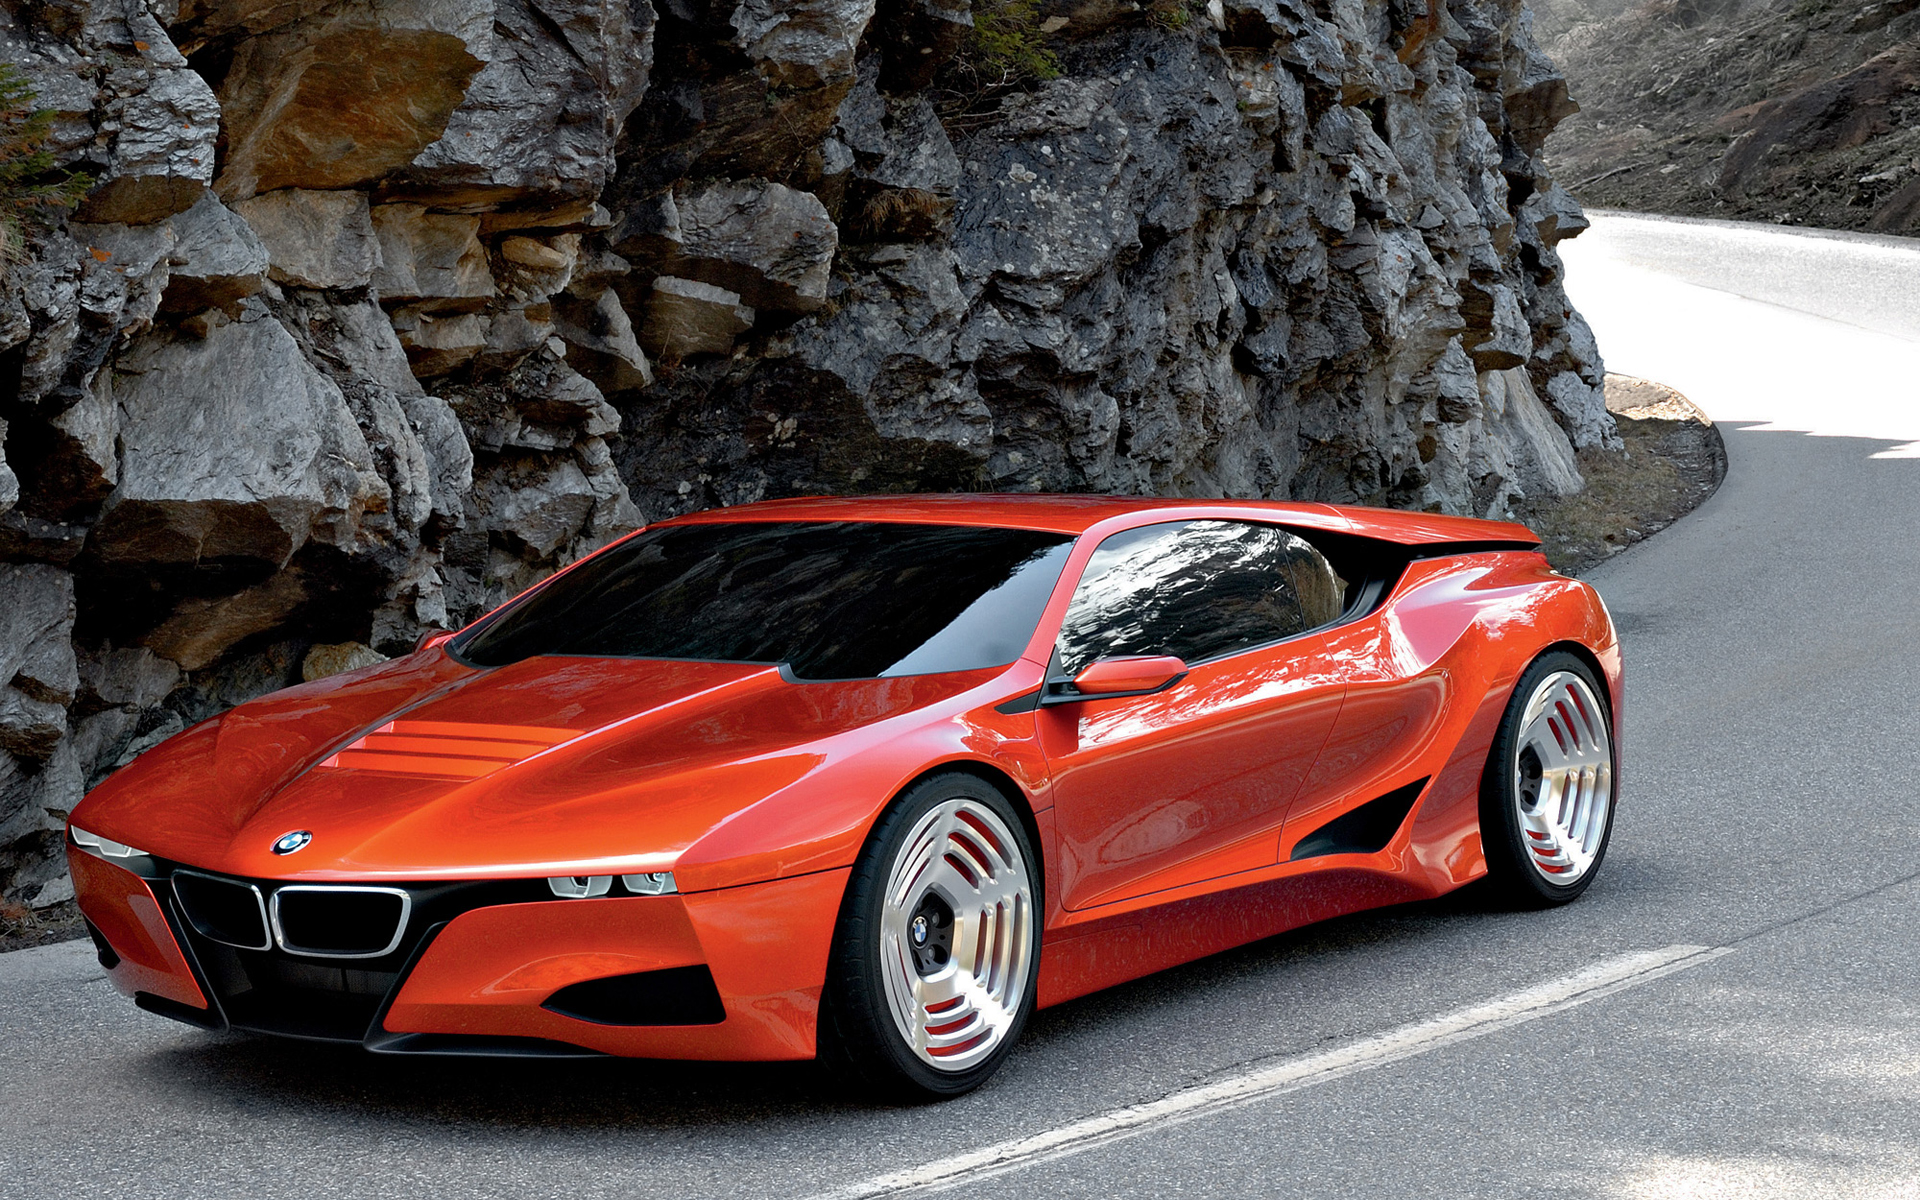 BMW M1 Hommage (10) wallpapers | BMW M1 Hommage (10) stock ...